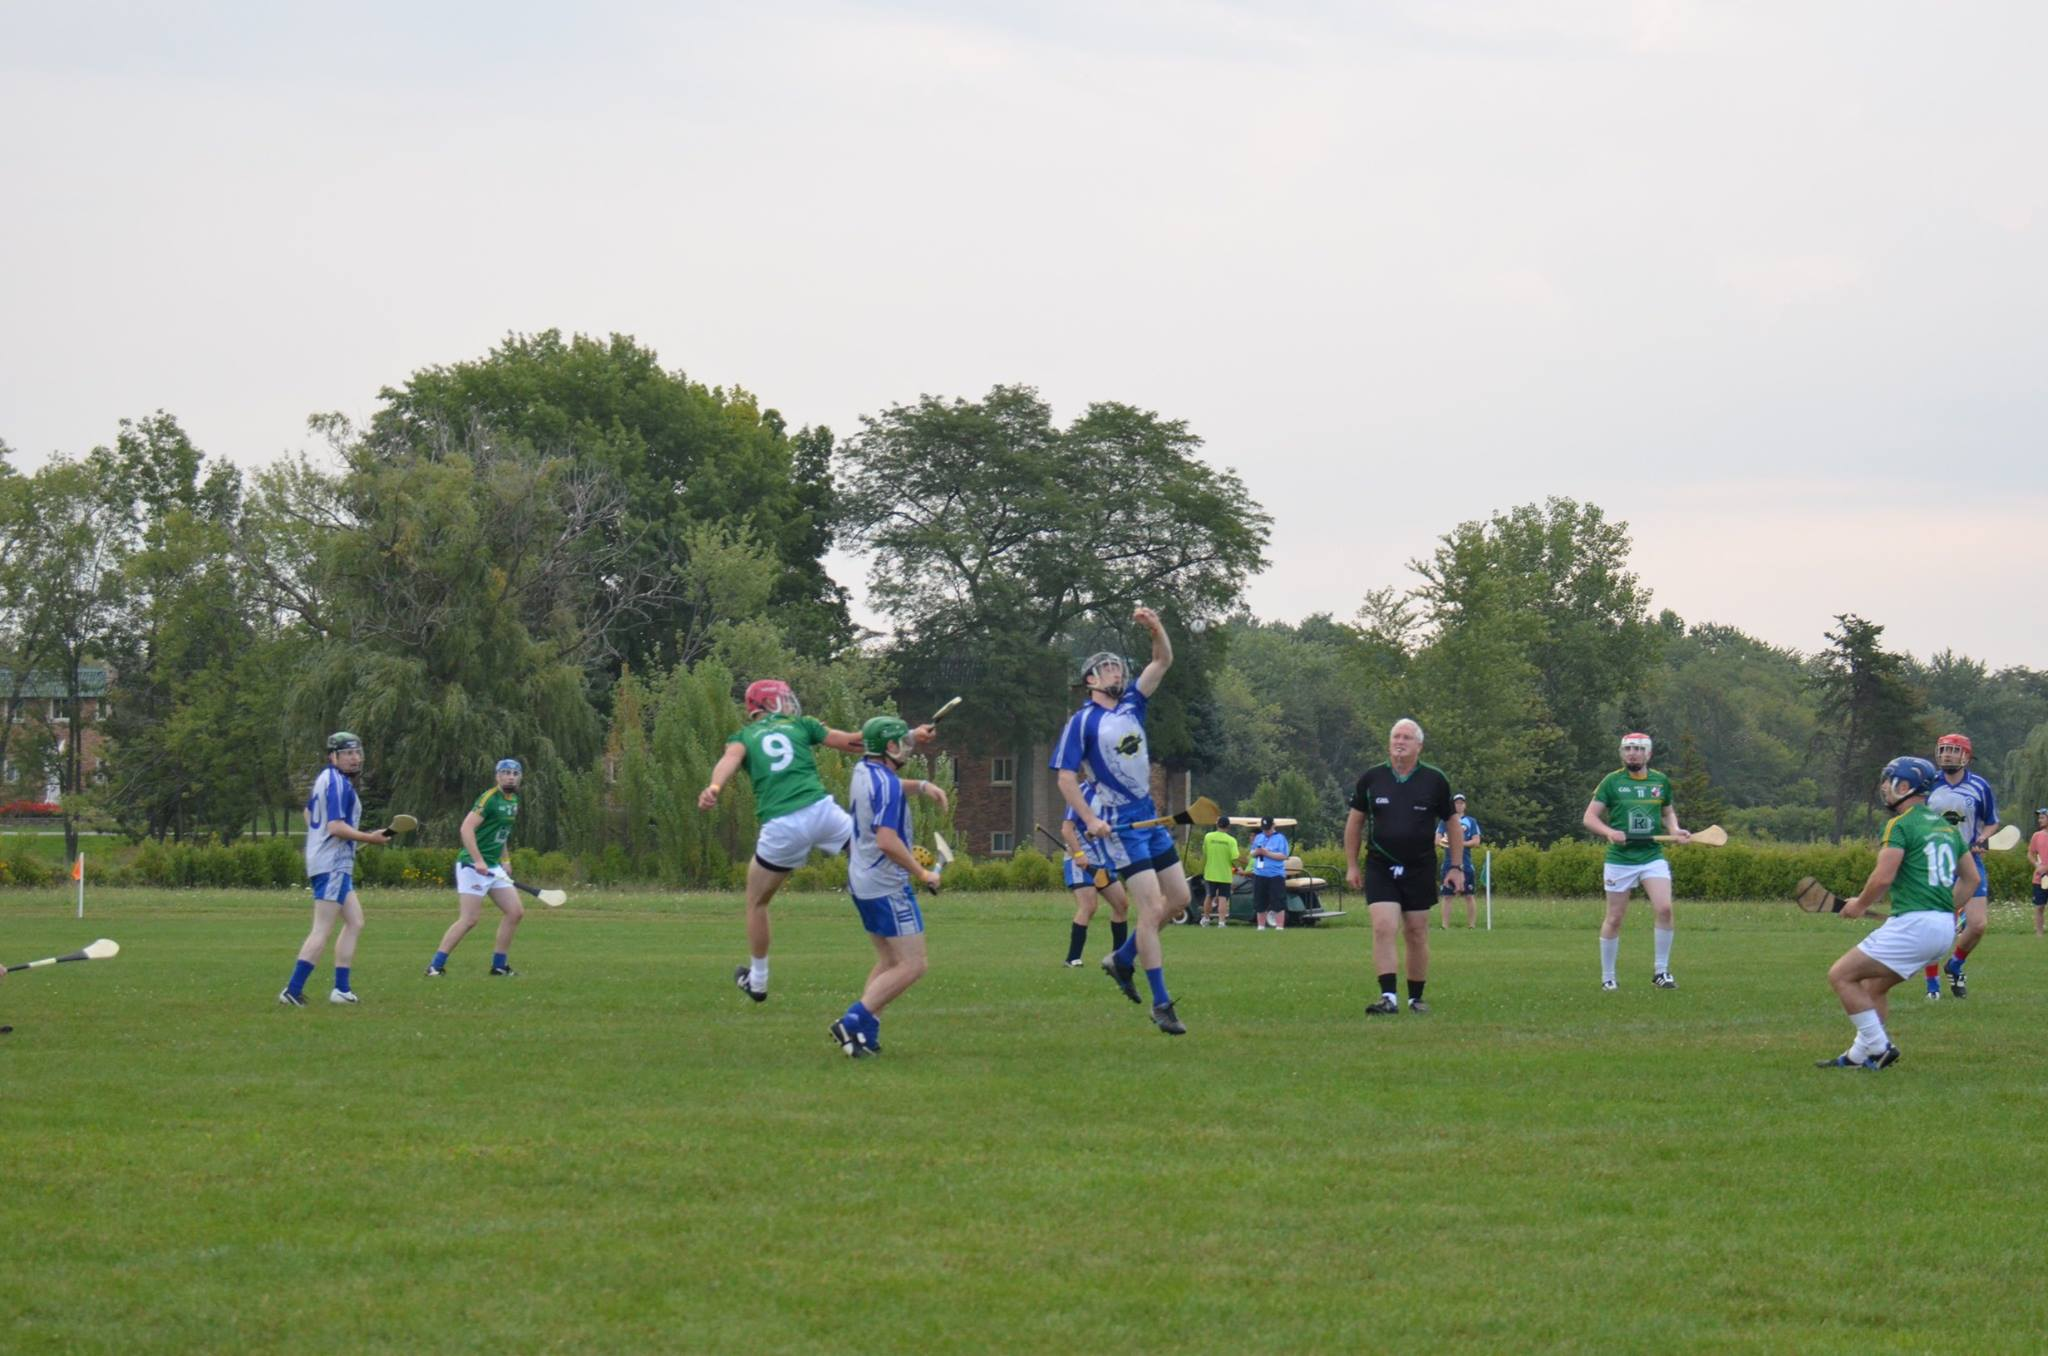 Colm refereeing